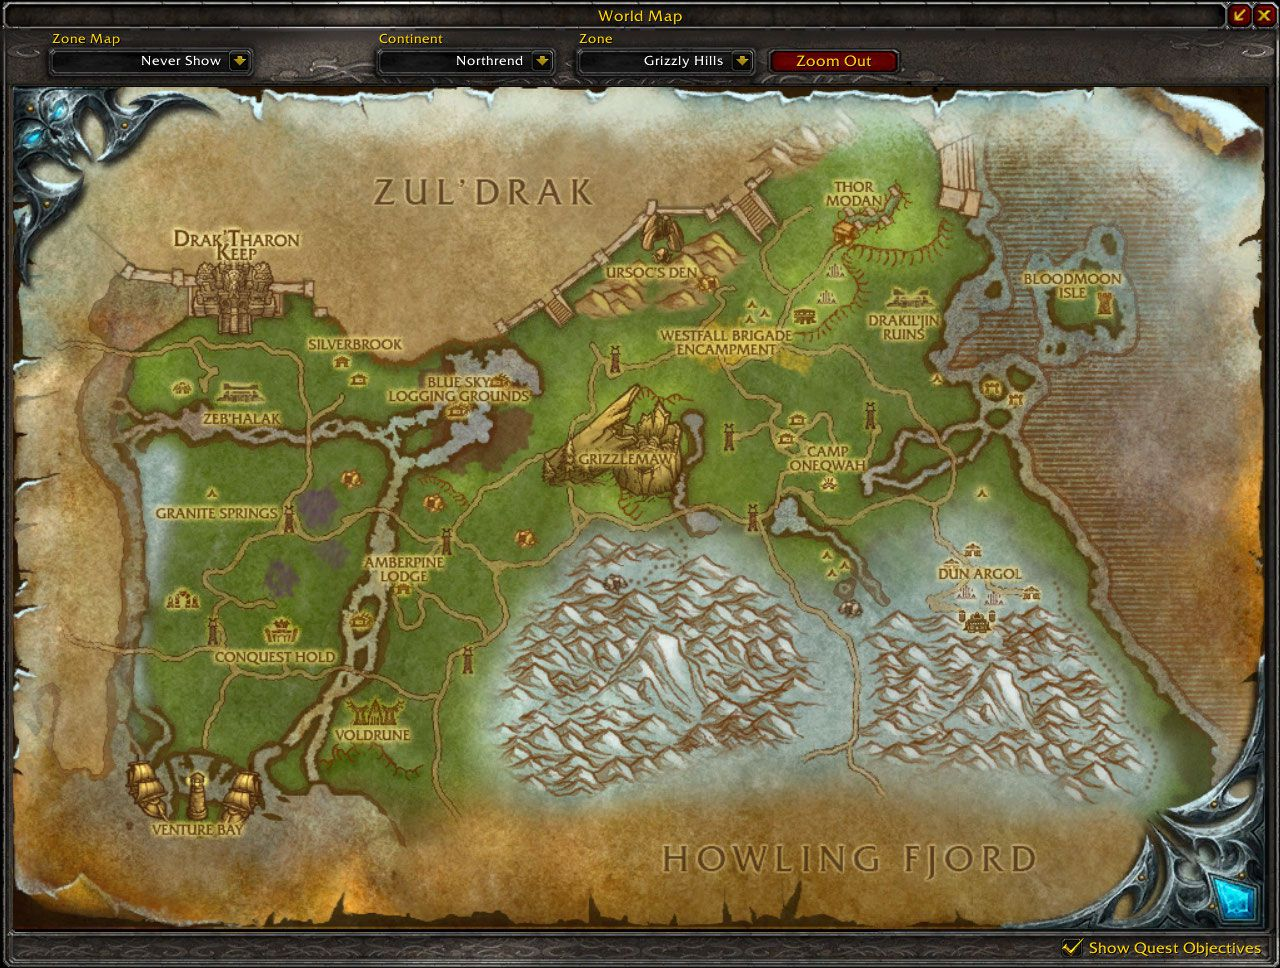 Grizzly hills map wow screenshot gamingcfg grizzly hills map wow screenshot gumiabroncs Images